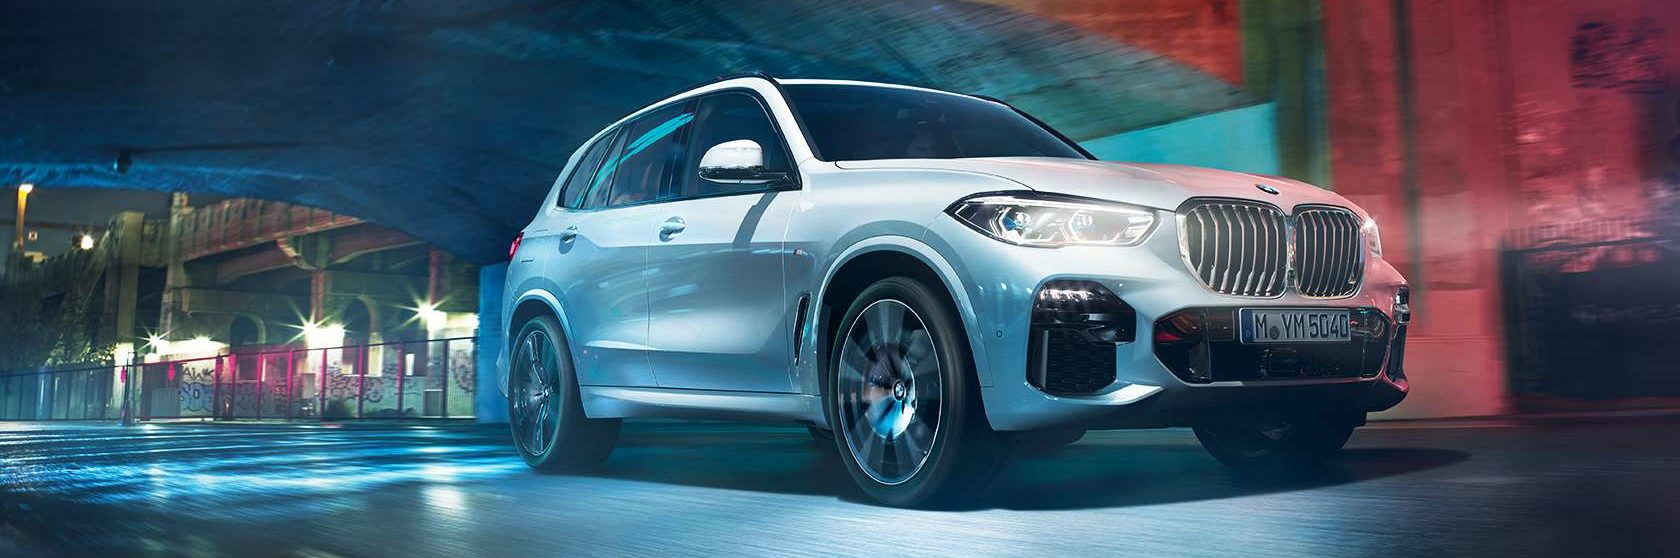 The All-New 2019 BMW X5 in white